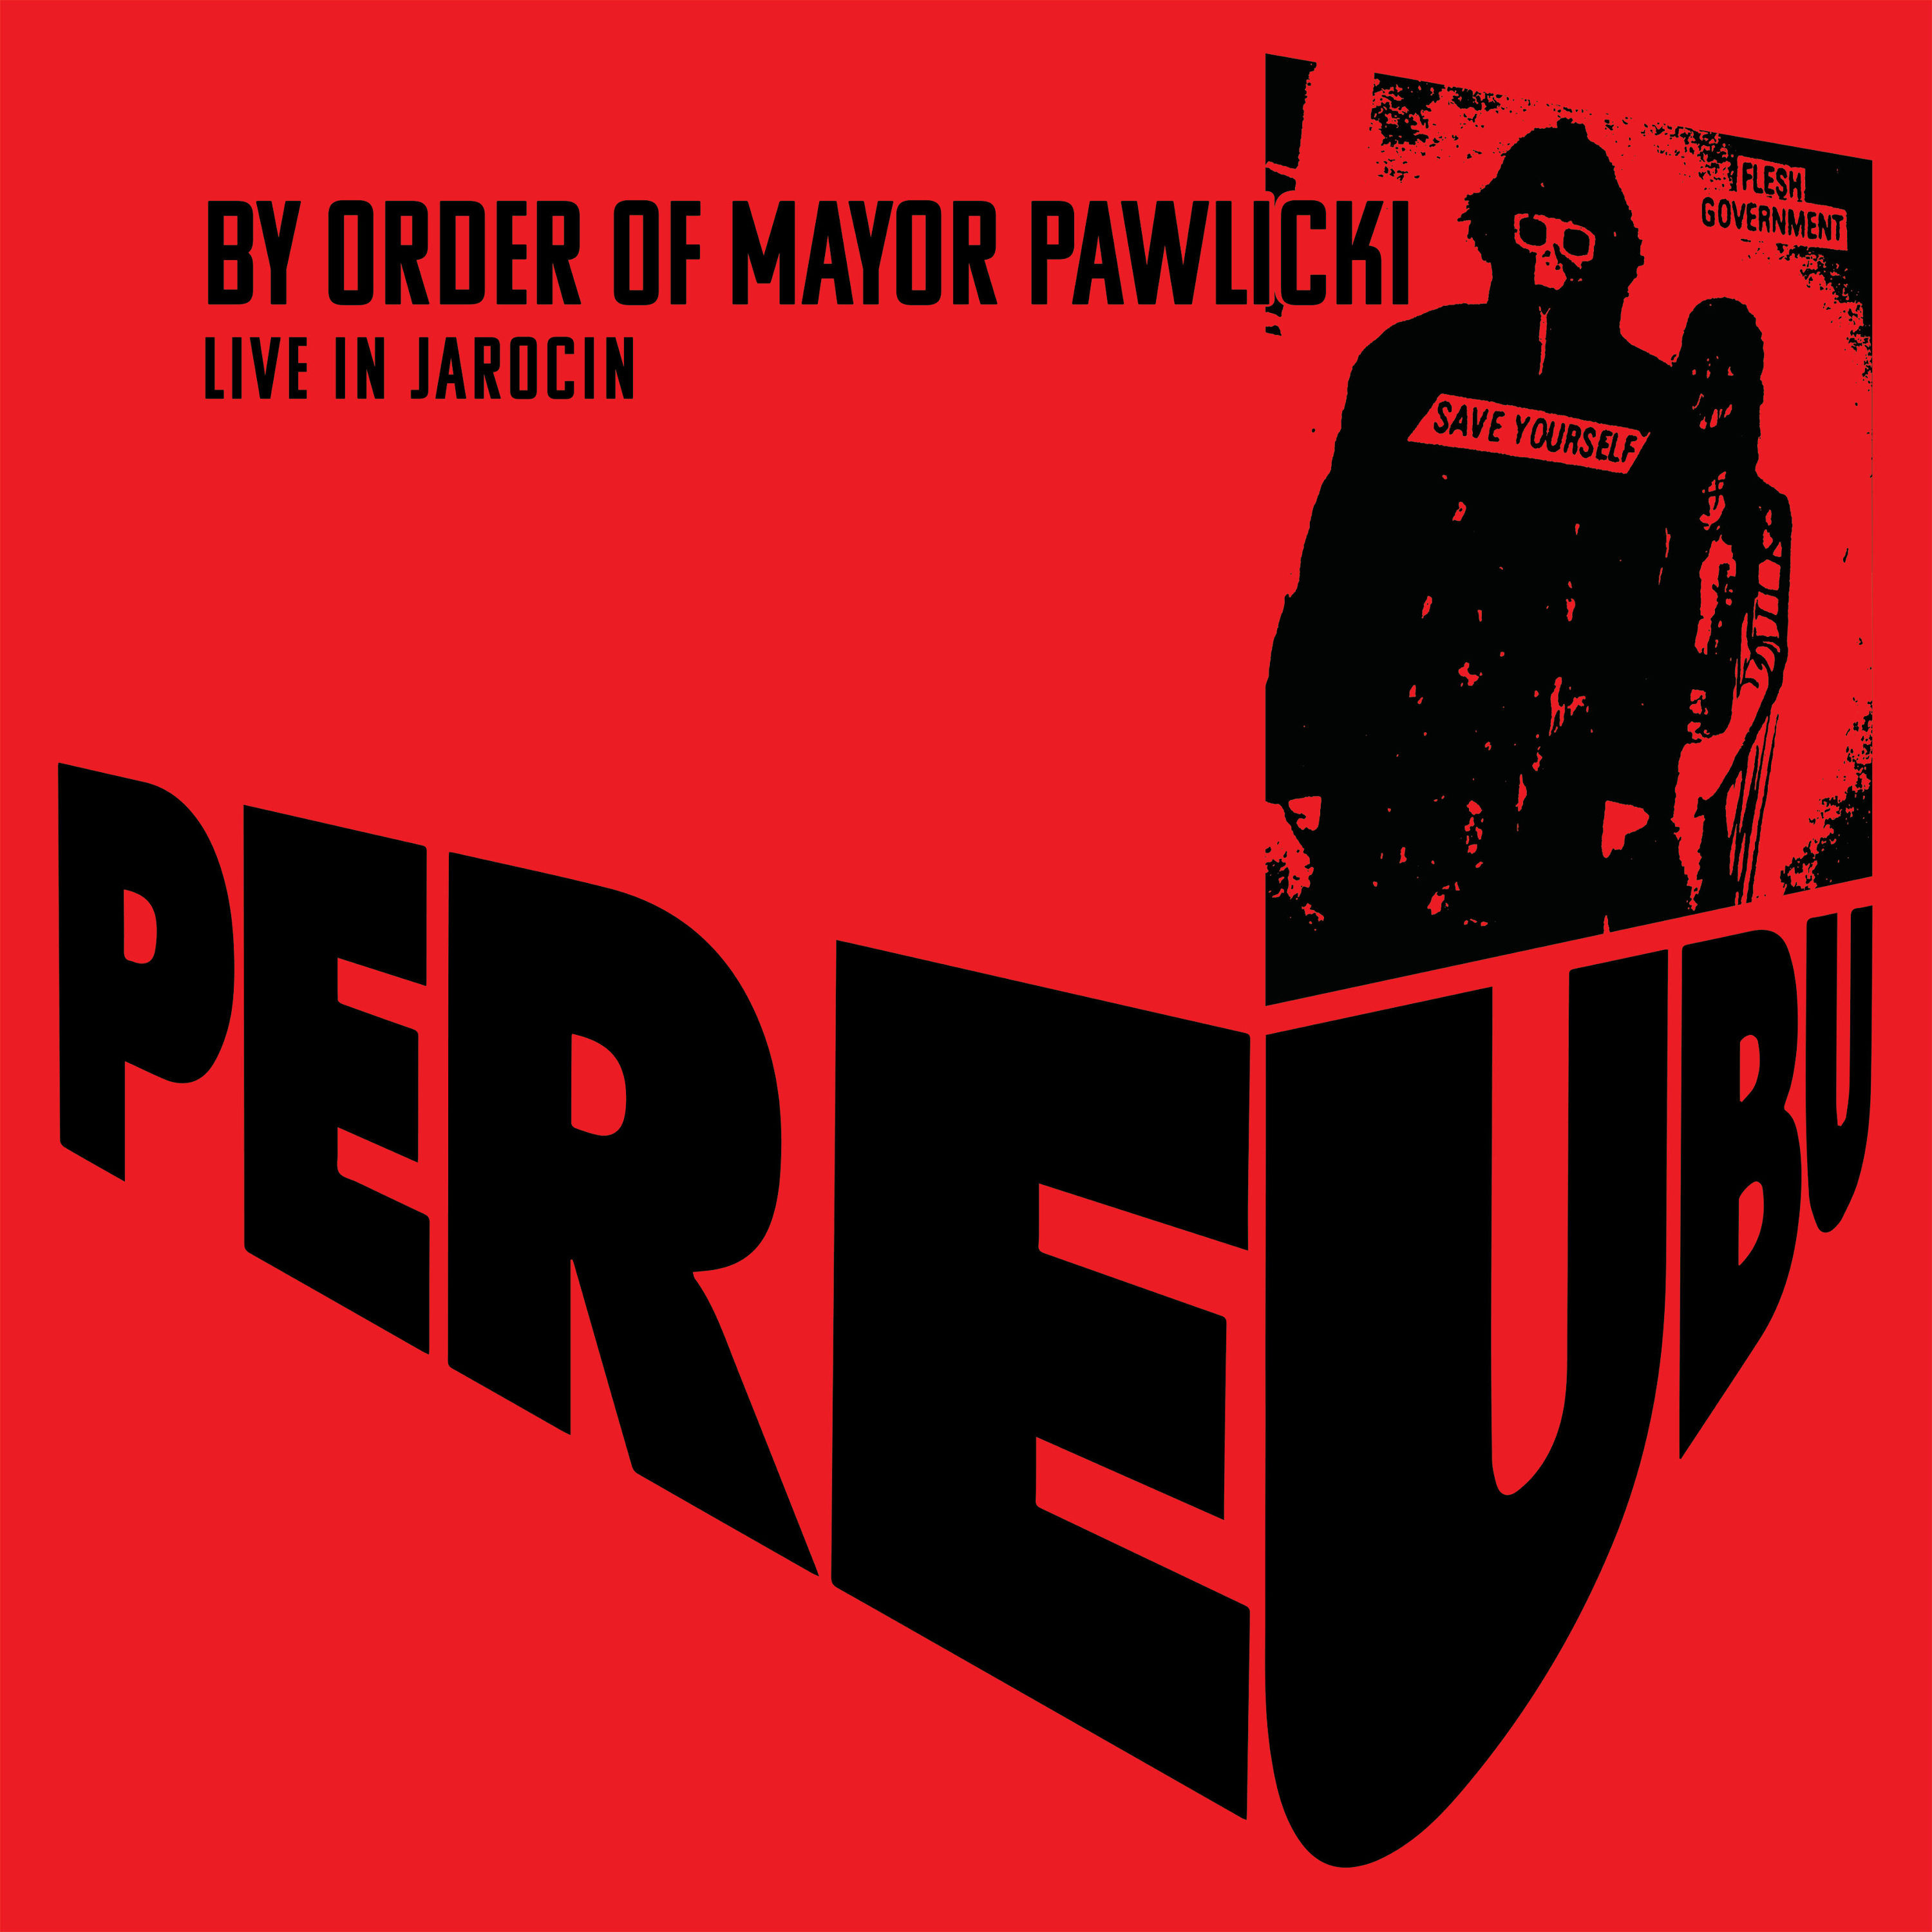 Pere Ubu - By Order Of Mayor Pawlicki (Live In Jarocin) (2020) [FLAC]